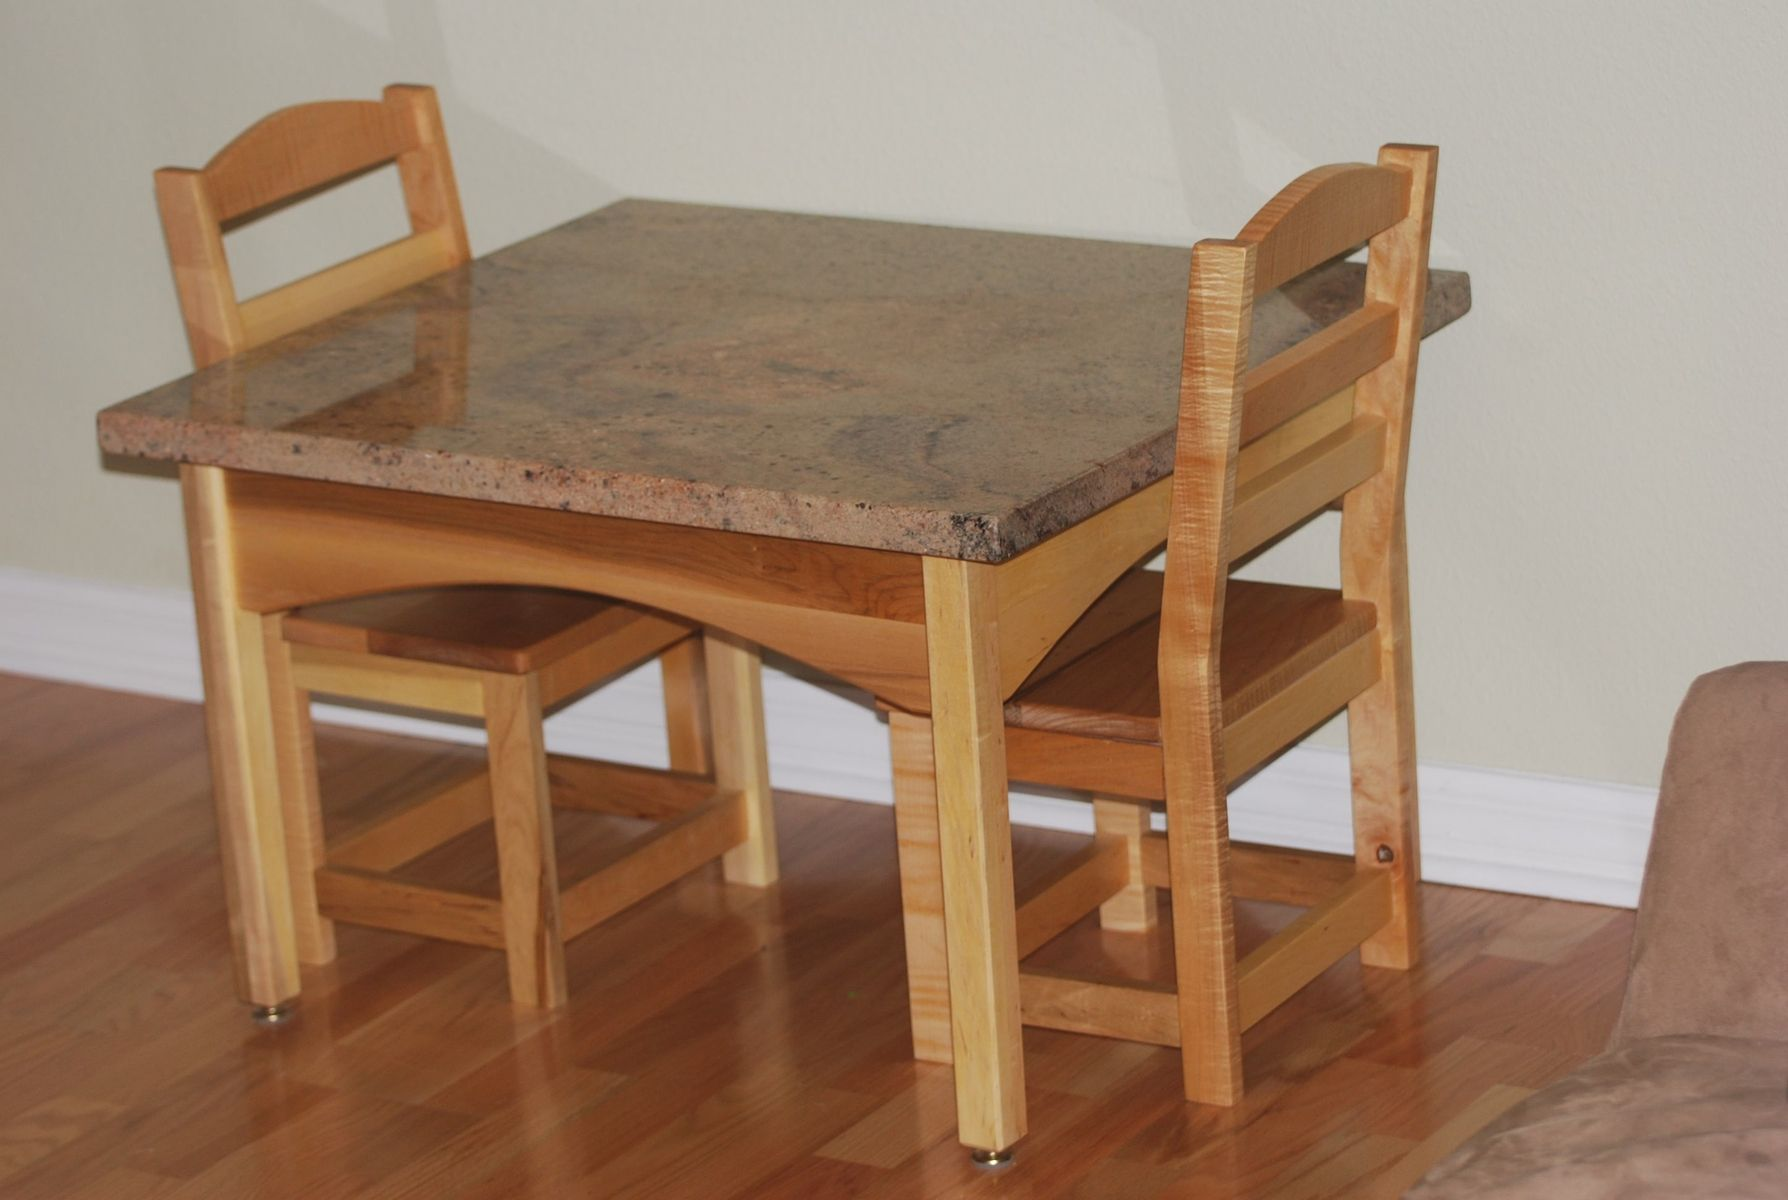 Hand Crafted Childrens Table And Chair Set By Memphis